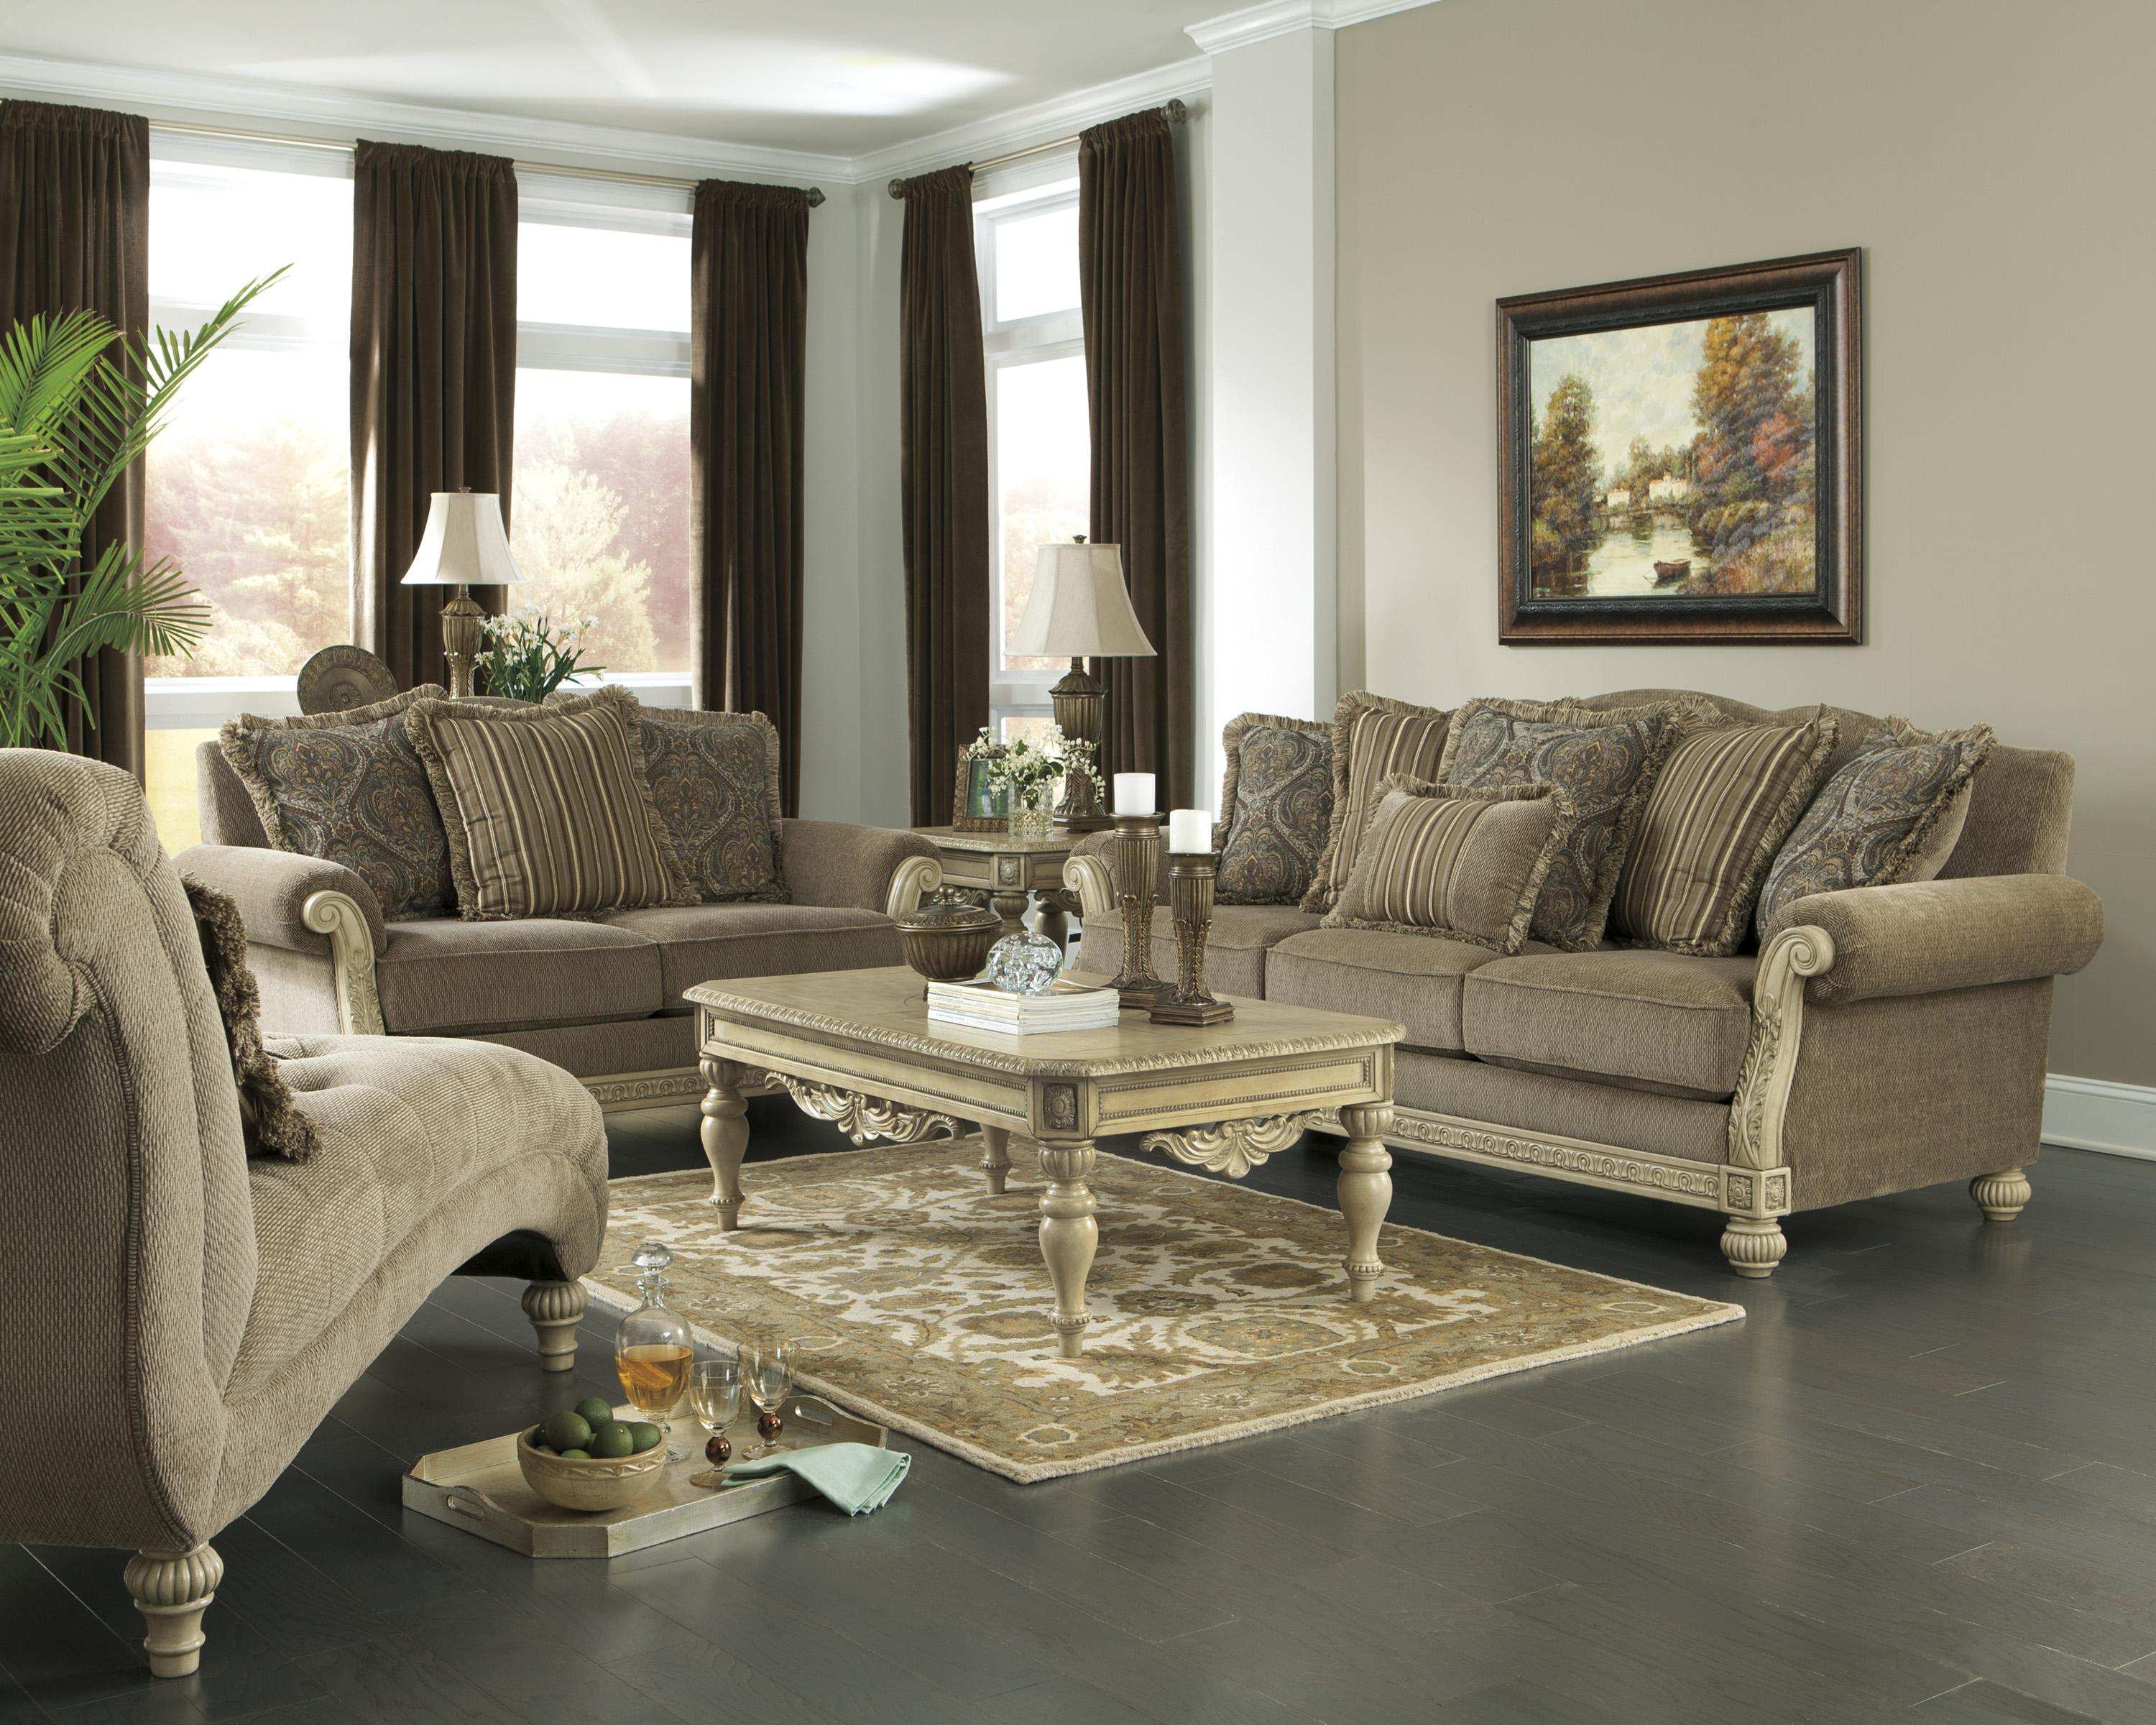 Signature design by ashley parkington bay platinum tufted chaise w exposed legs bigfurniturewebsite chaise